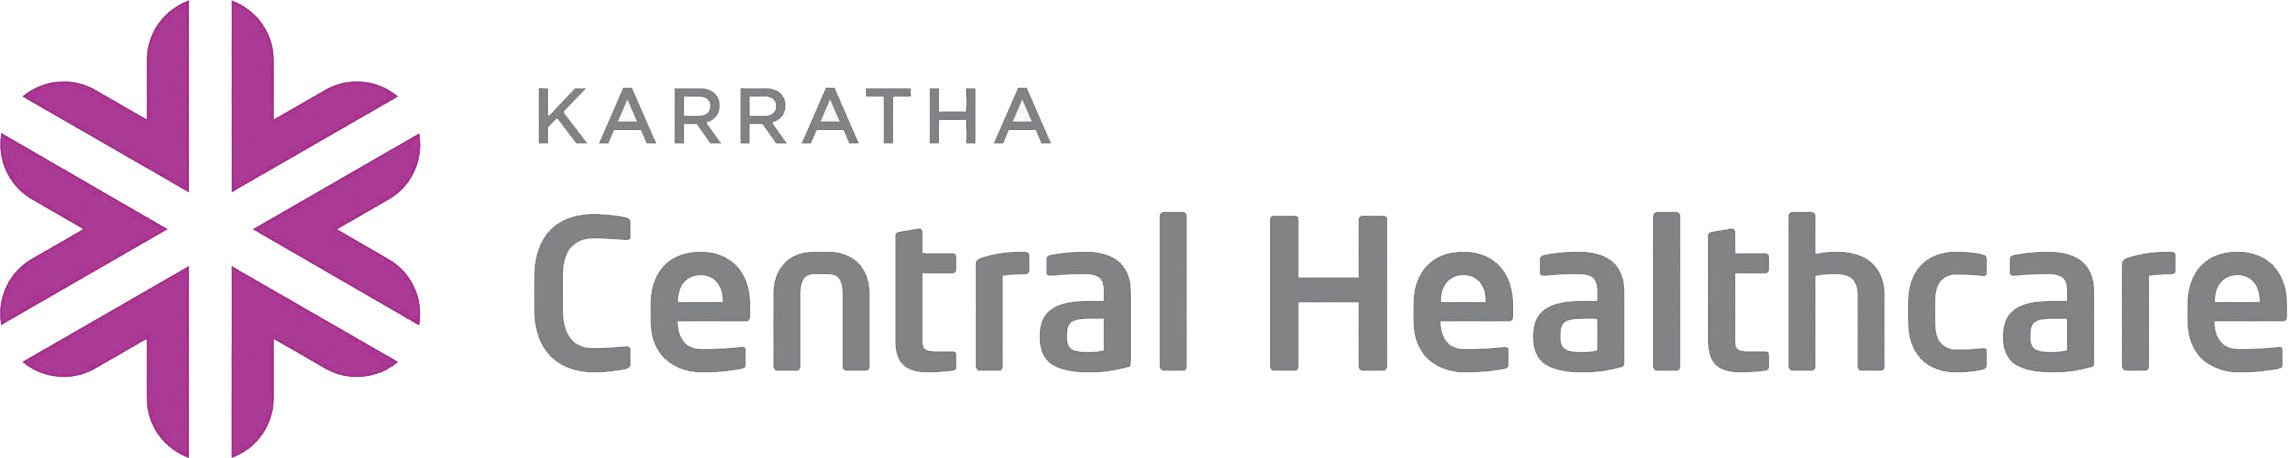 Karratha Central Healthcare Logo